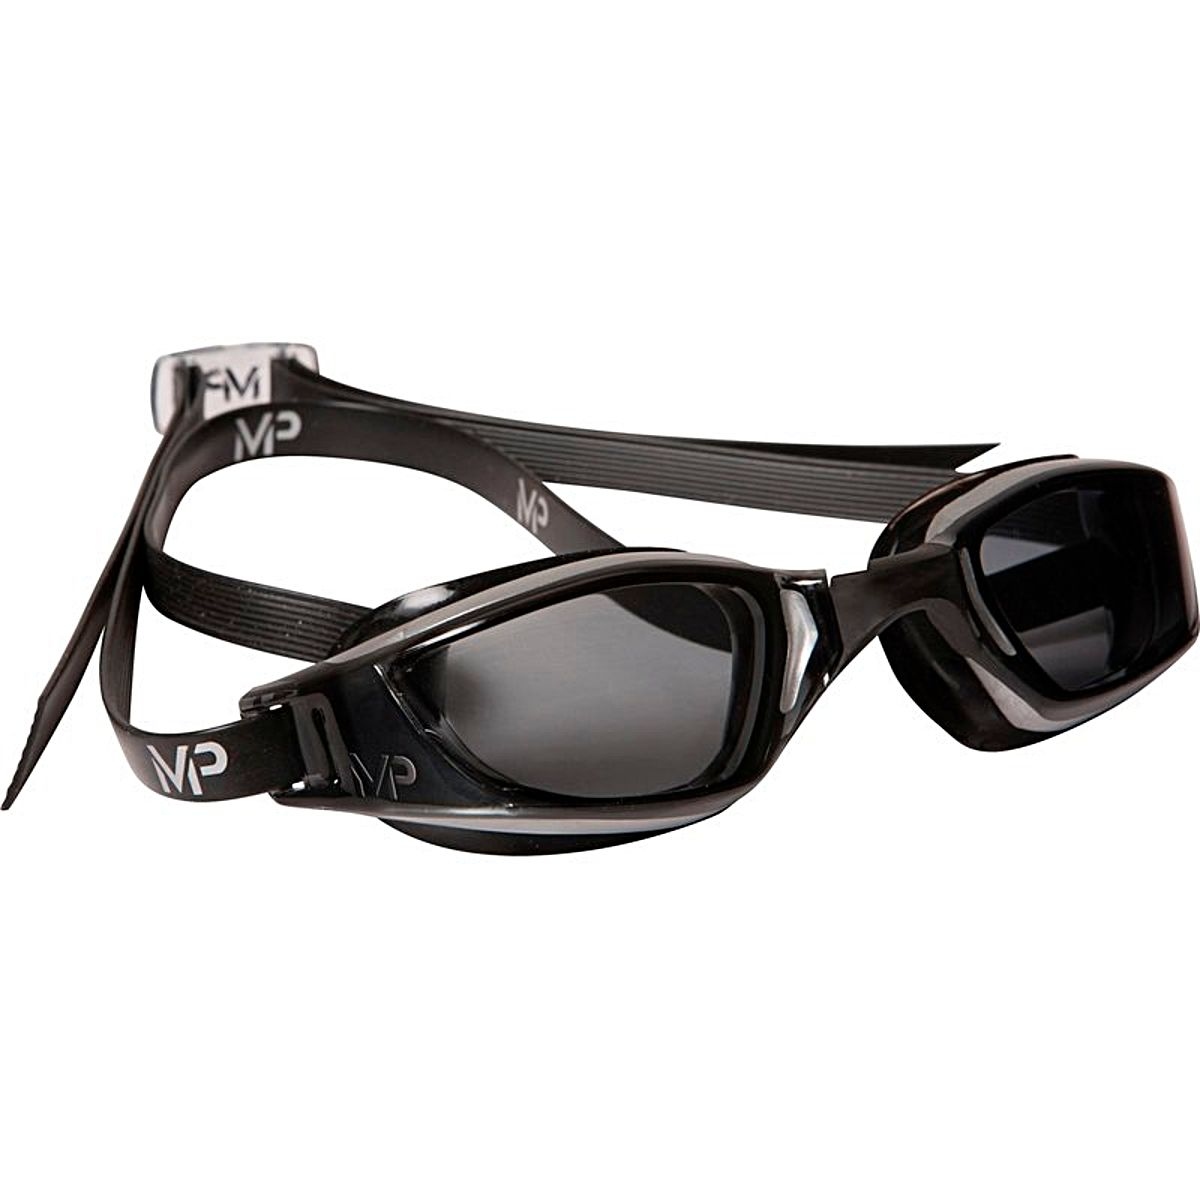 MP Michael Phelps XCEED swimming goggles | Glasses